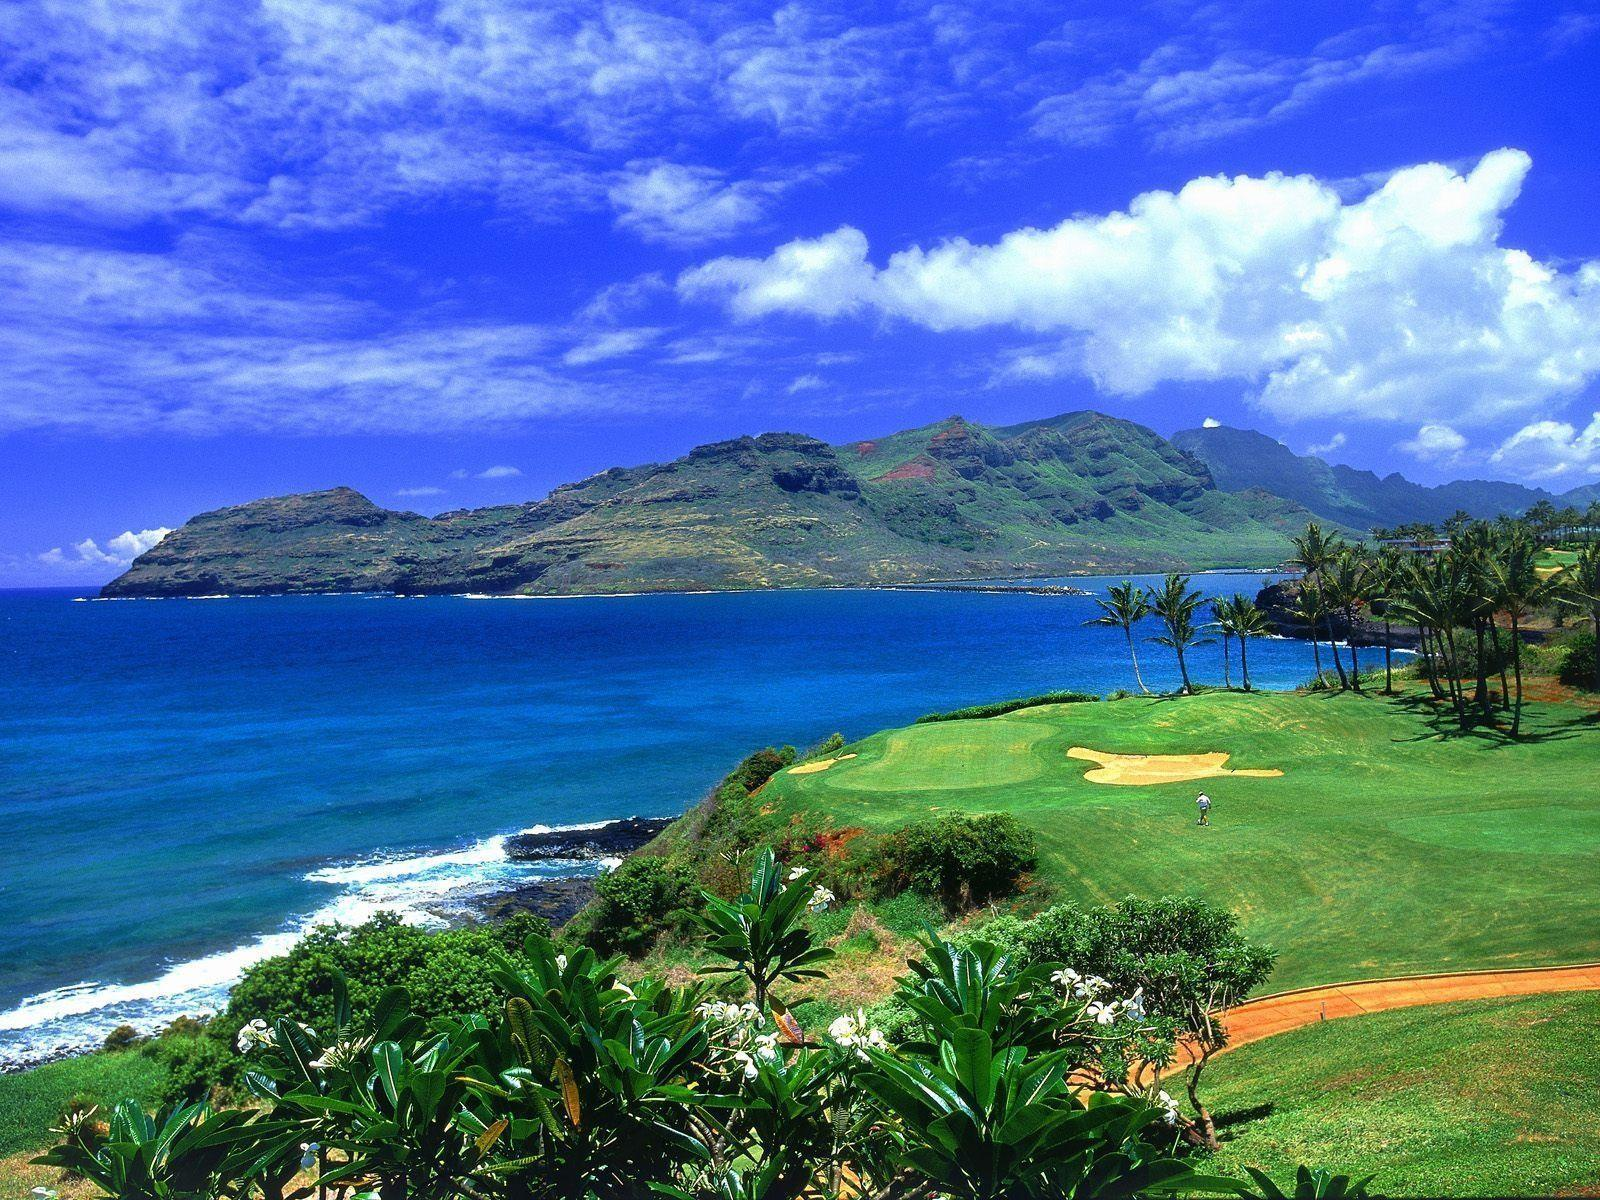 Hawaii Golf Wallpapers For Desktop, Backgrounds, Free HD Wallpapers